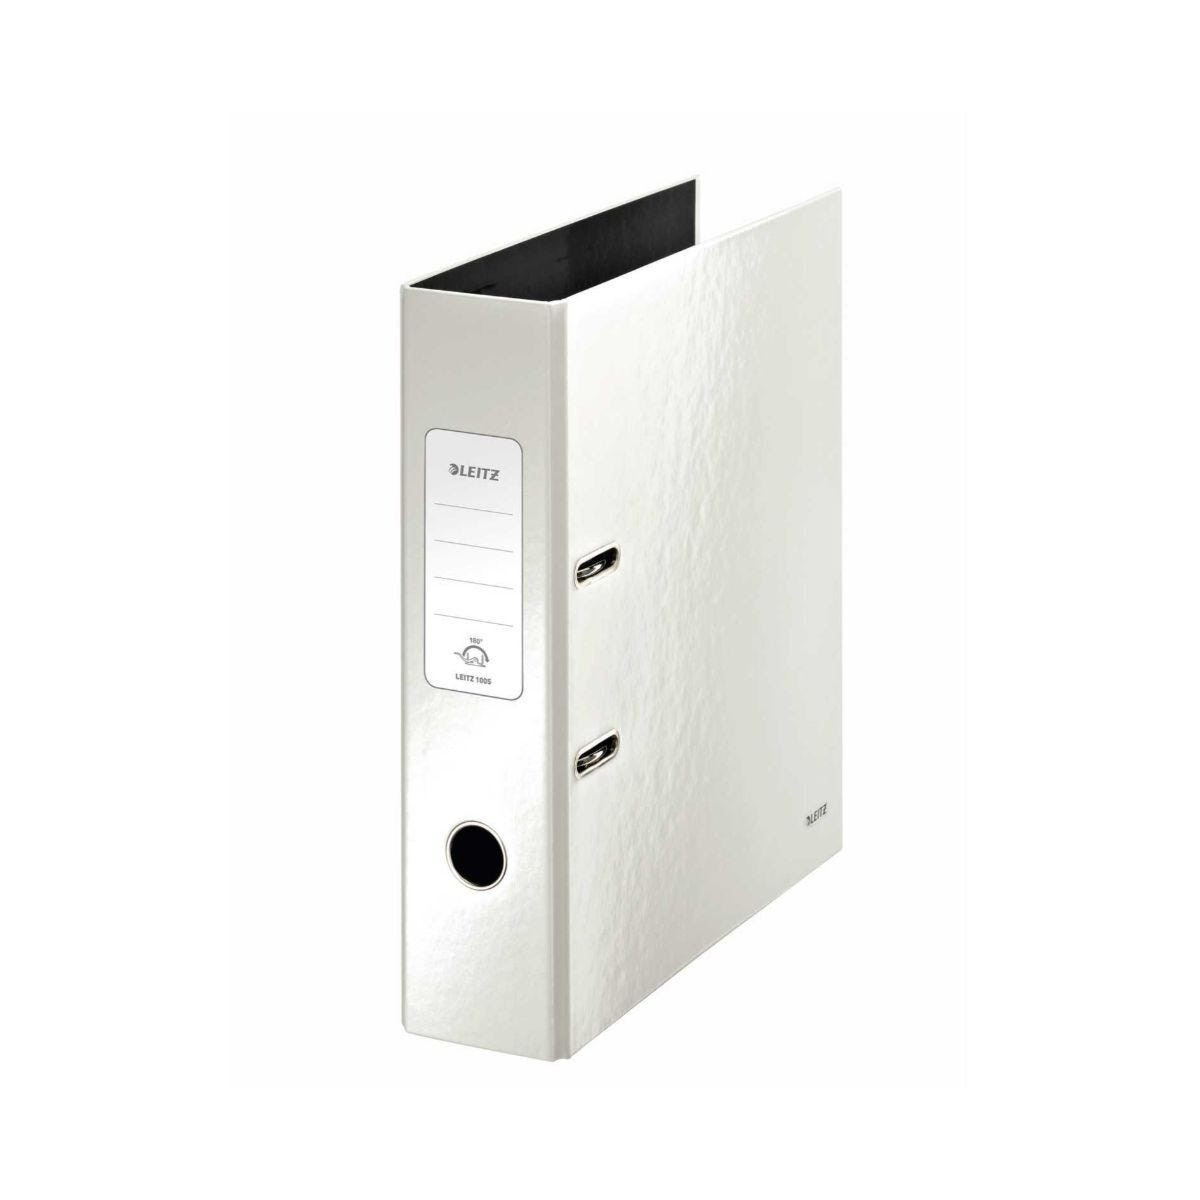 Leitz 180 WOW Laminated A4 Lever Arch File Pearl White